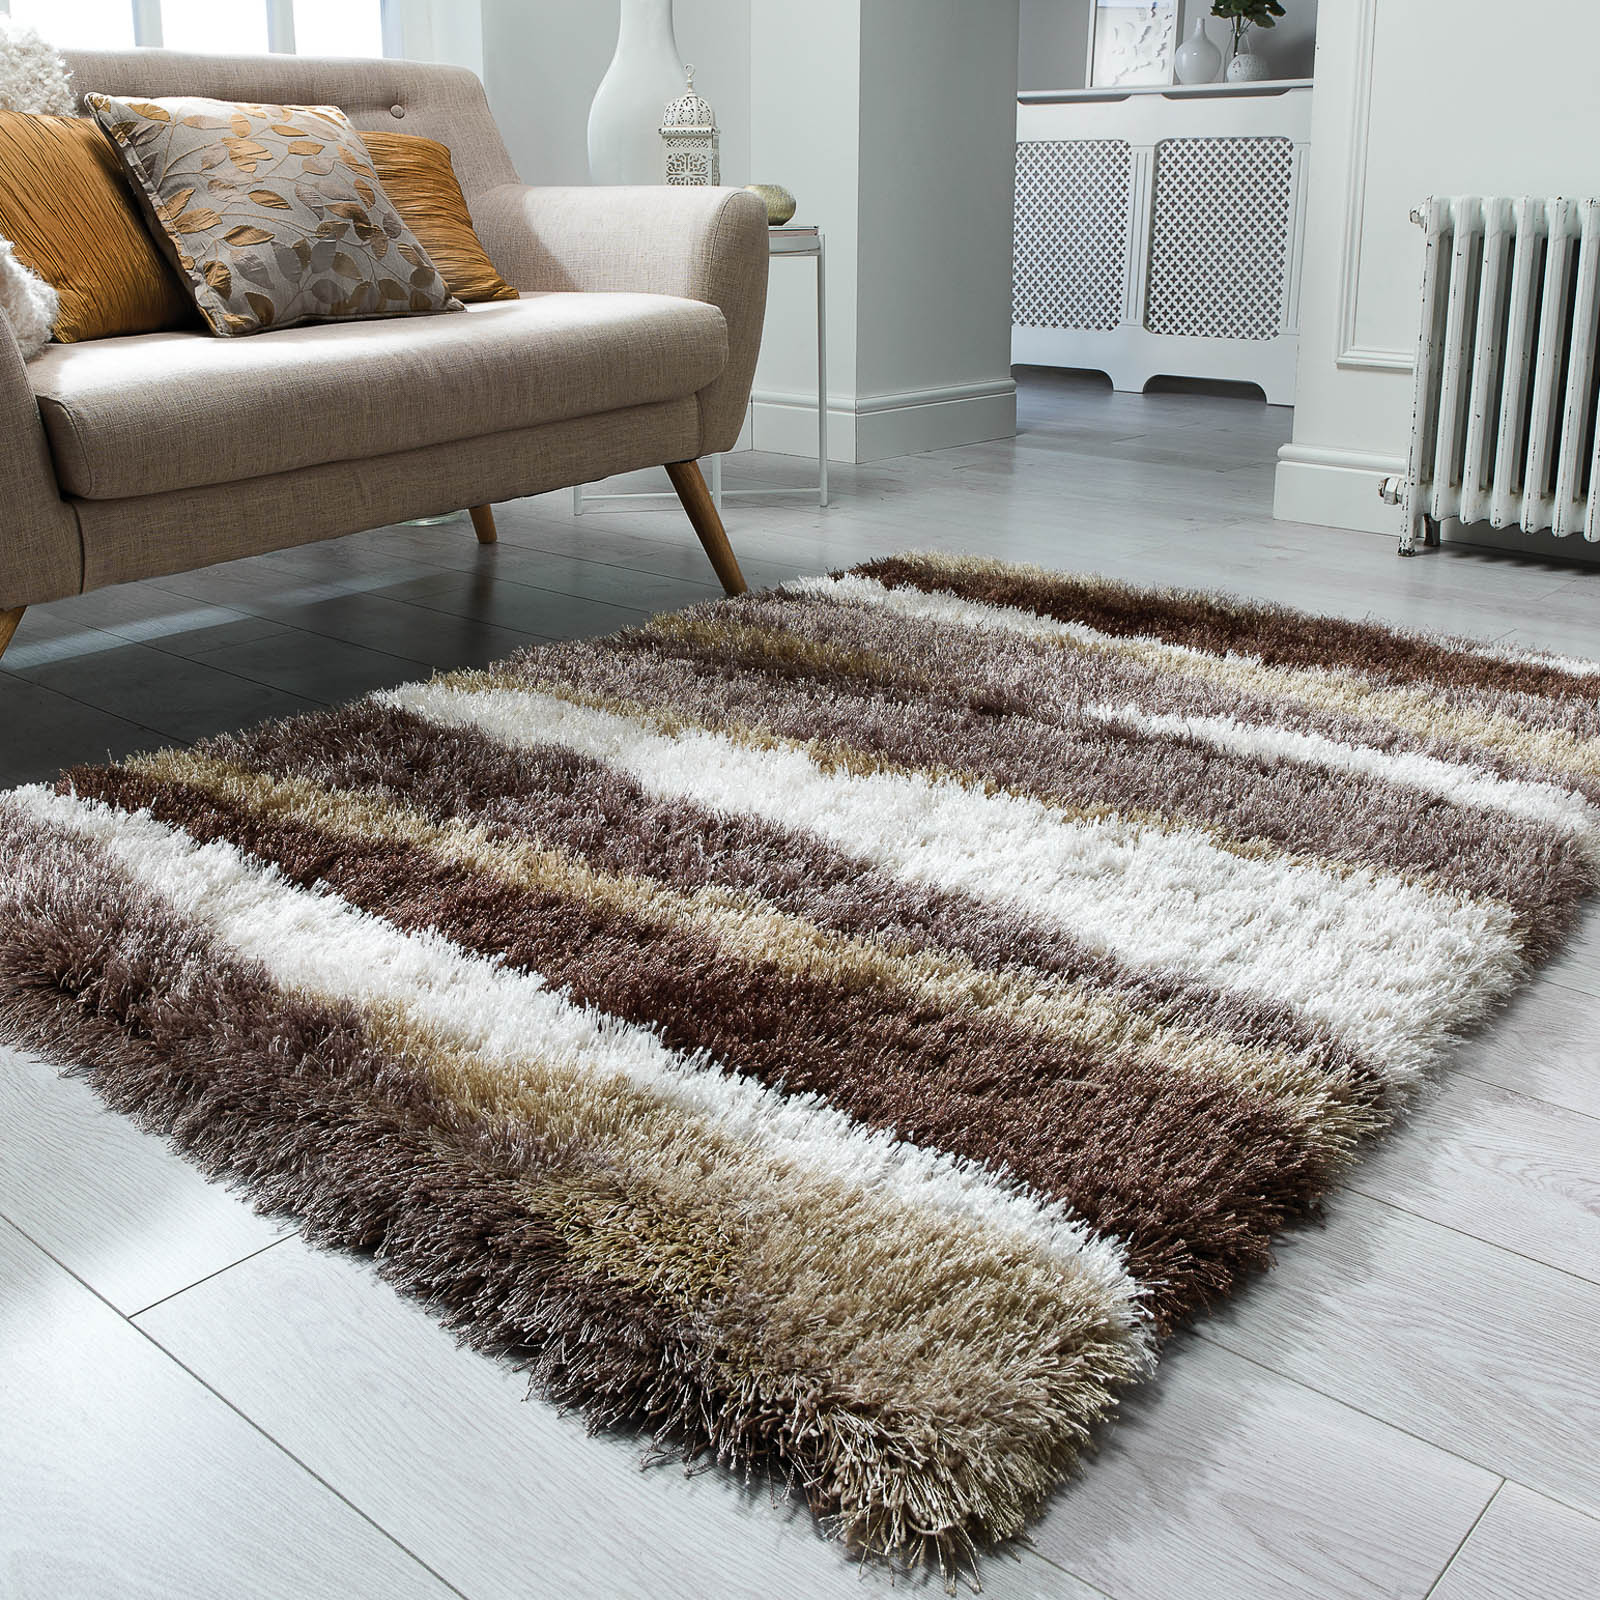 shaggy carpets beautiful fluffy pile carpets the best types for cleaning and care by IHWFLSP